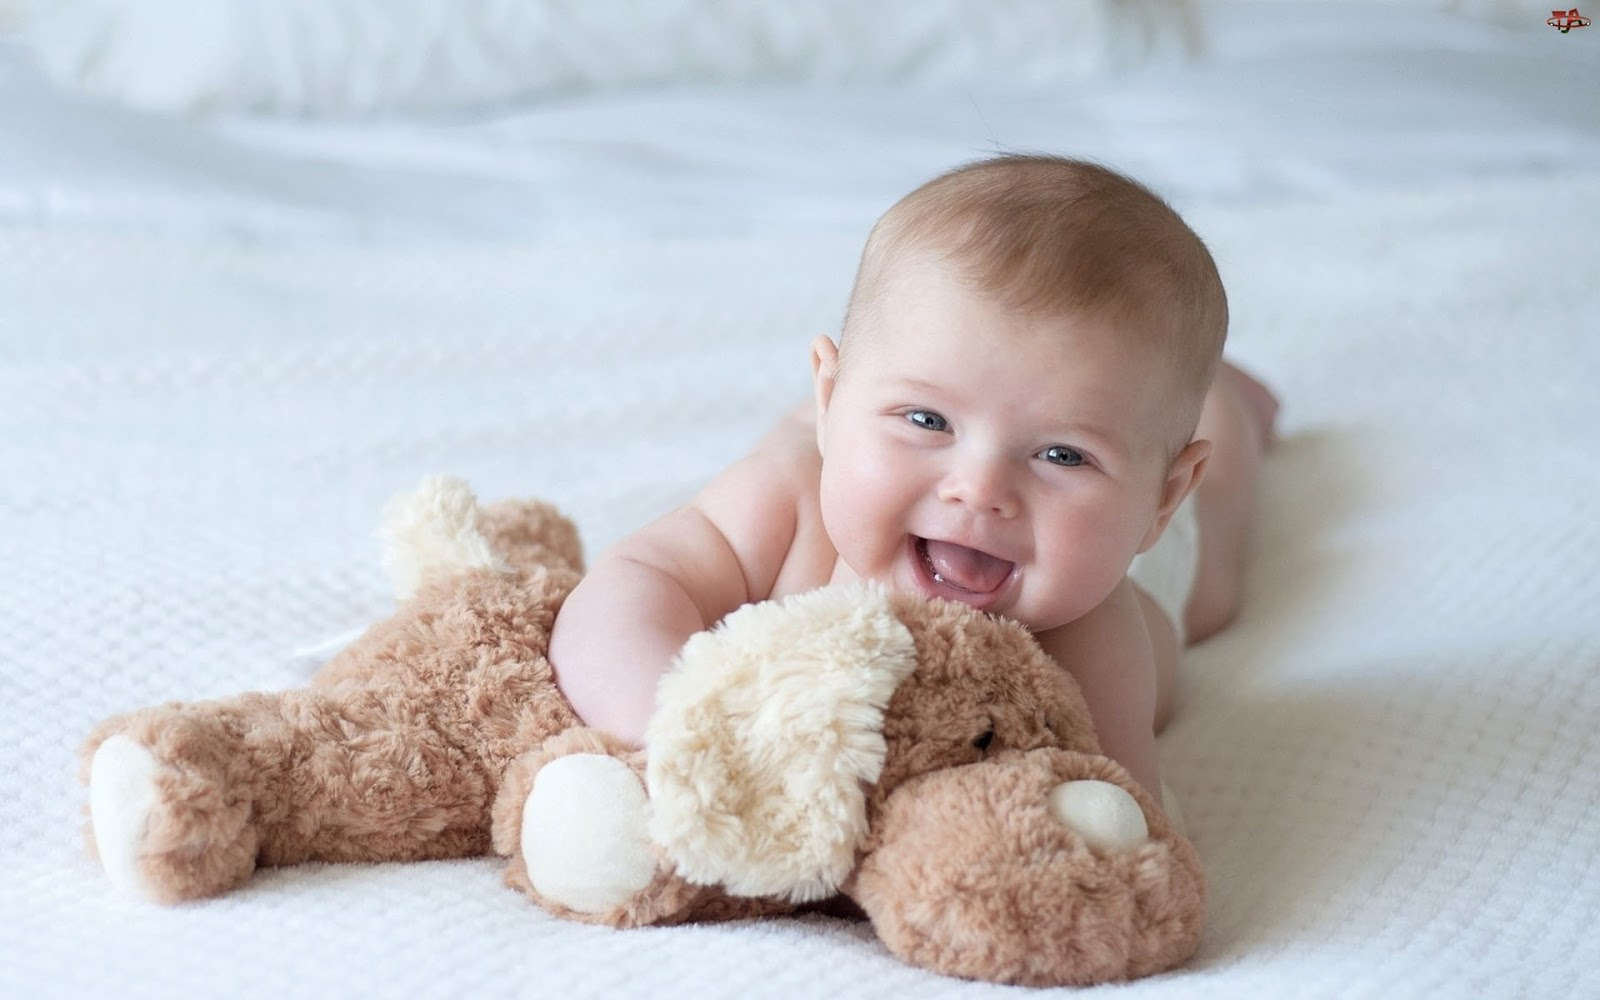 Baby Boy Wallpapers For Mobile The Art Mad Wallpapers 1600x1000